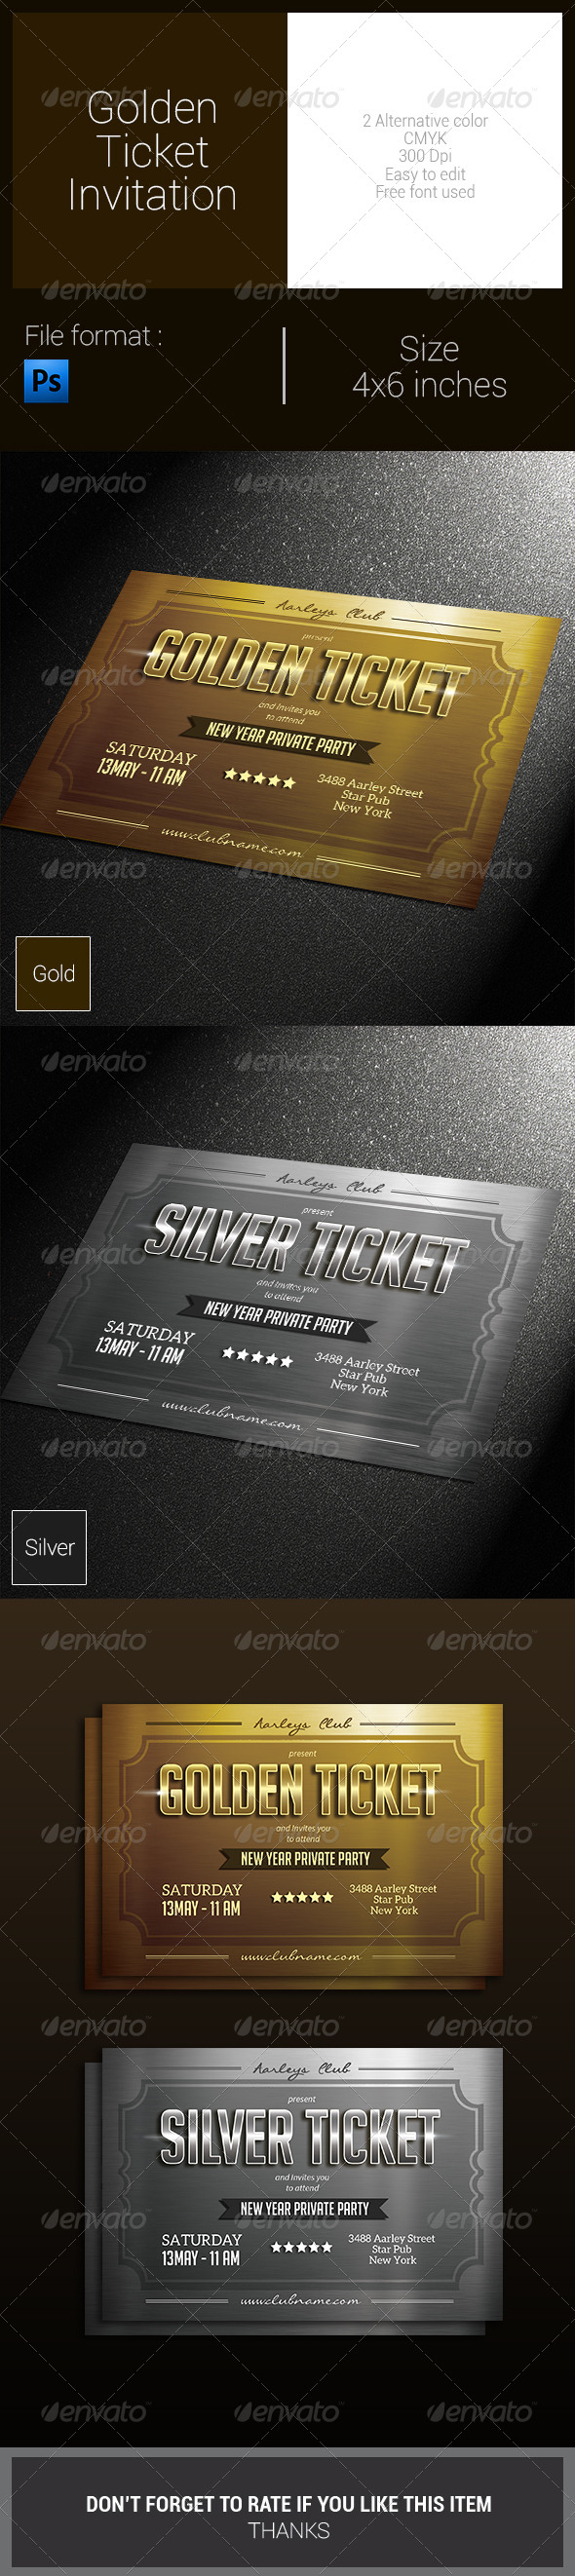 GraphicRiver Golden Ticket Invitation 8156197